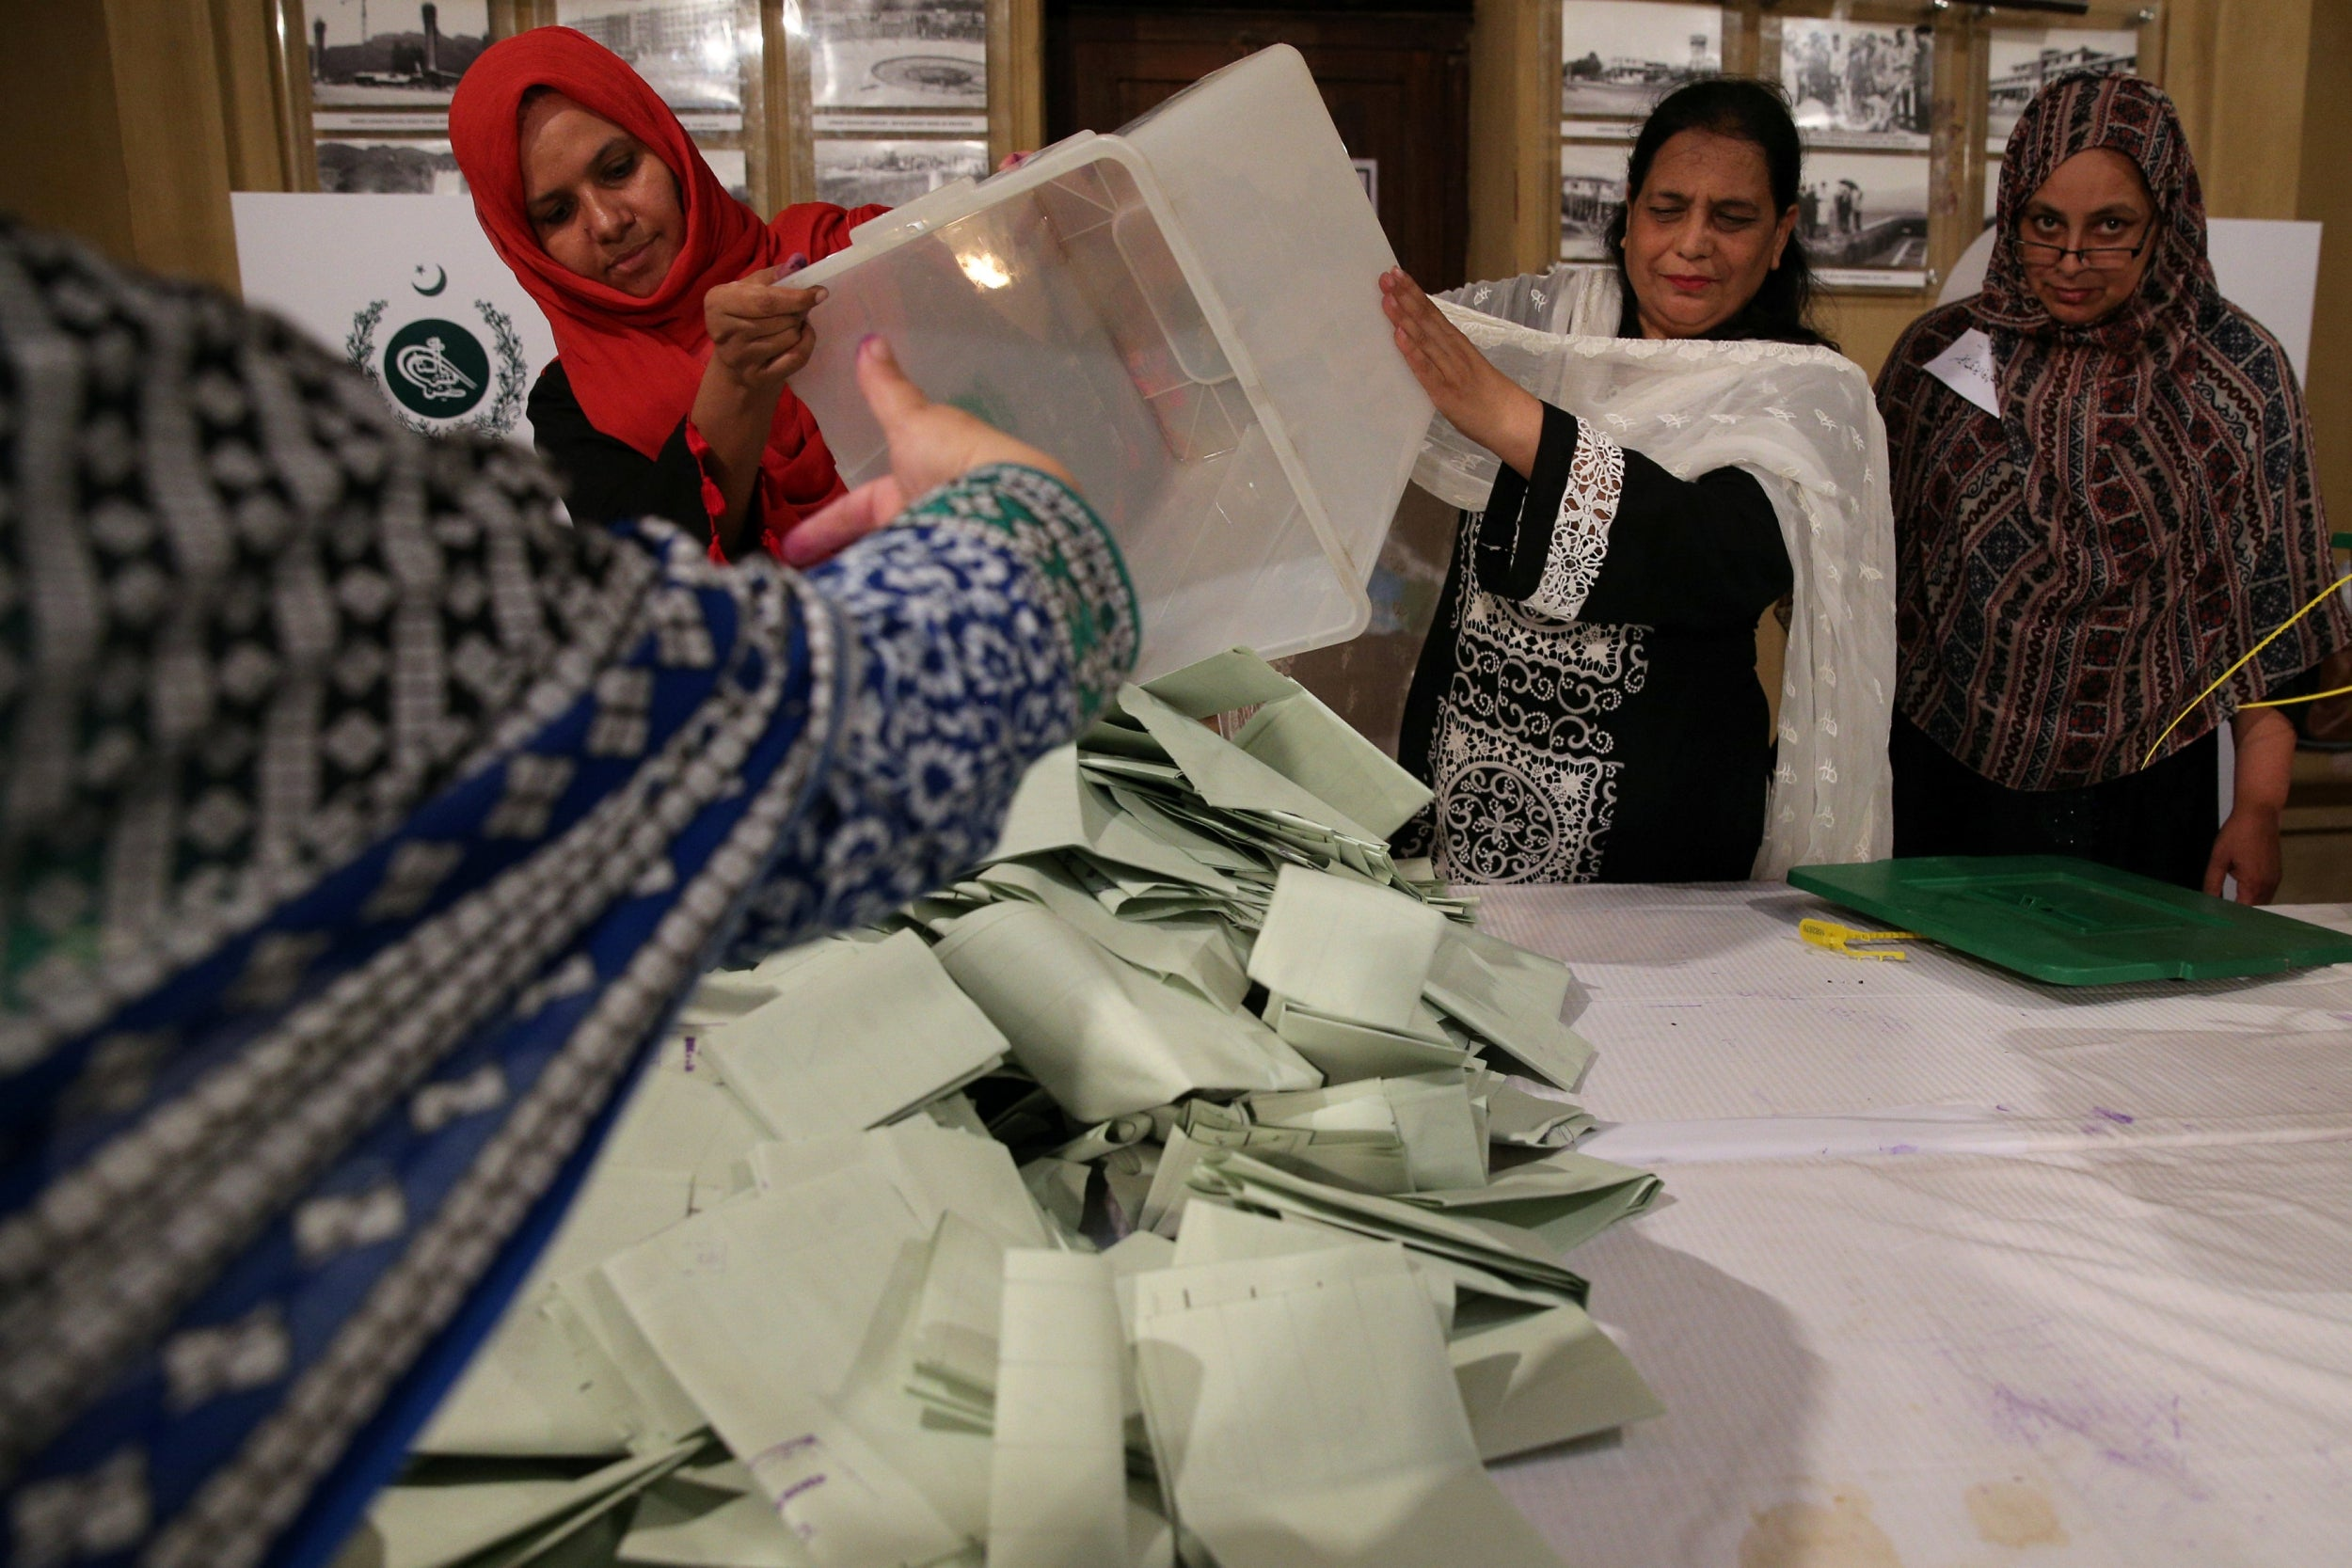 election in pakistan Elections in pakistan are expected to be held on 25-26 of july this year while in afghanistan parliamentary elections are scheduled to be held on october 20, 2018, after undergoing a delay of almost two years.